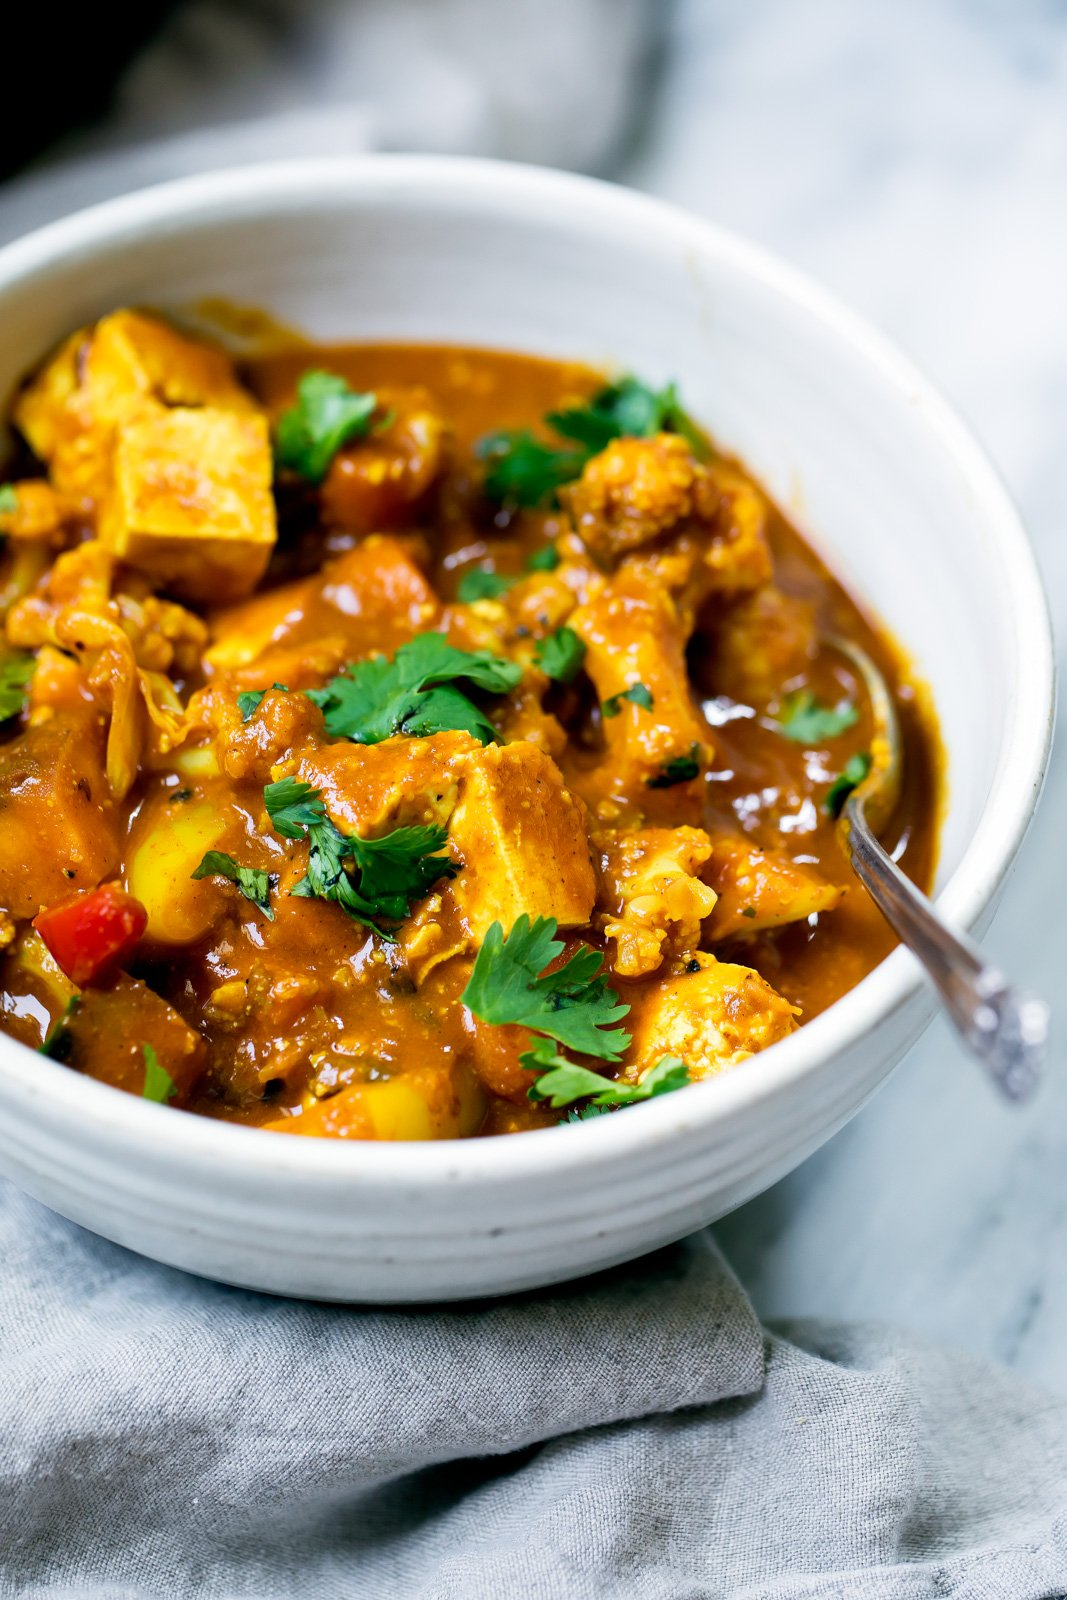 Cozy curry recipes that are perfect for an easy dinner. These delicious recipes are packed with veggies, protein, incredible curry flavors and warming spices. Plenty of vegan and vegetarian options!